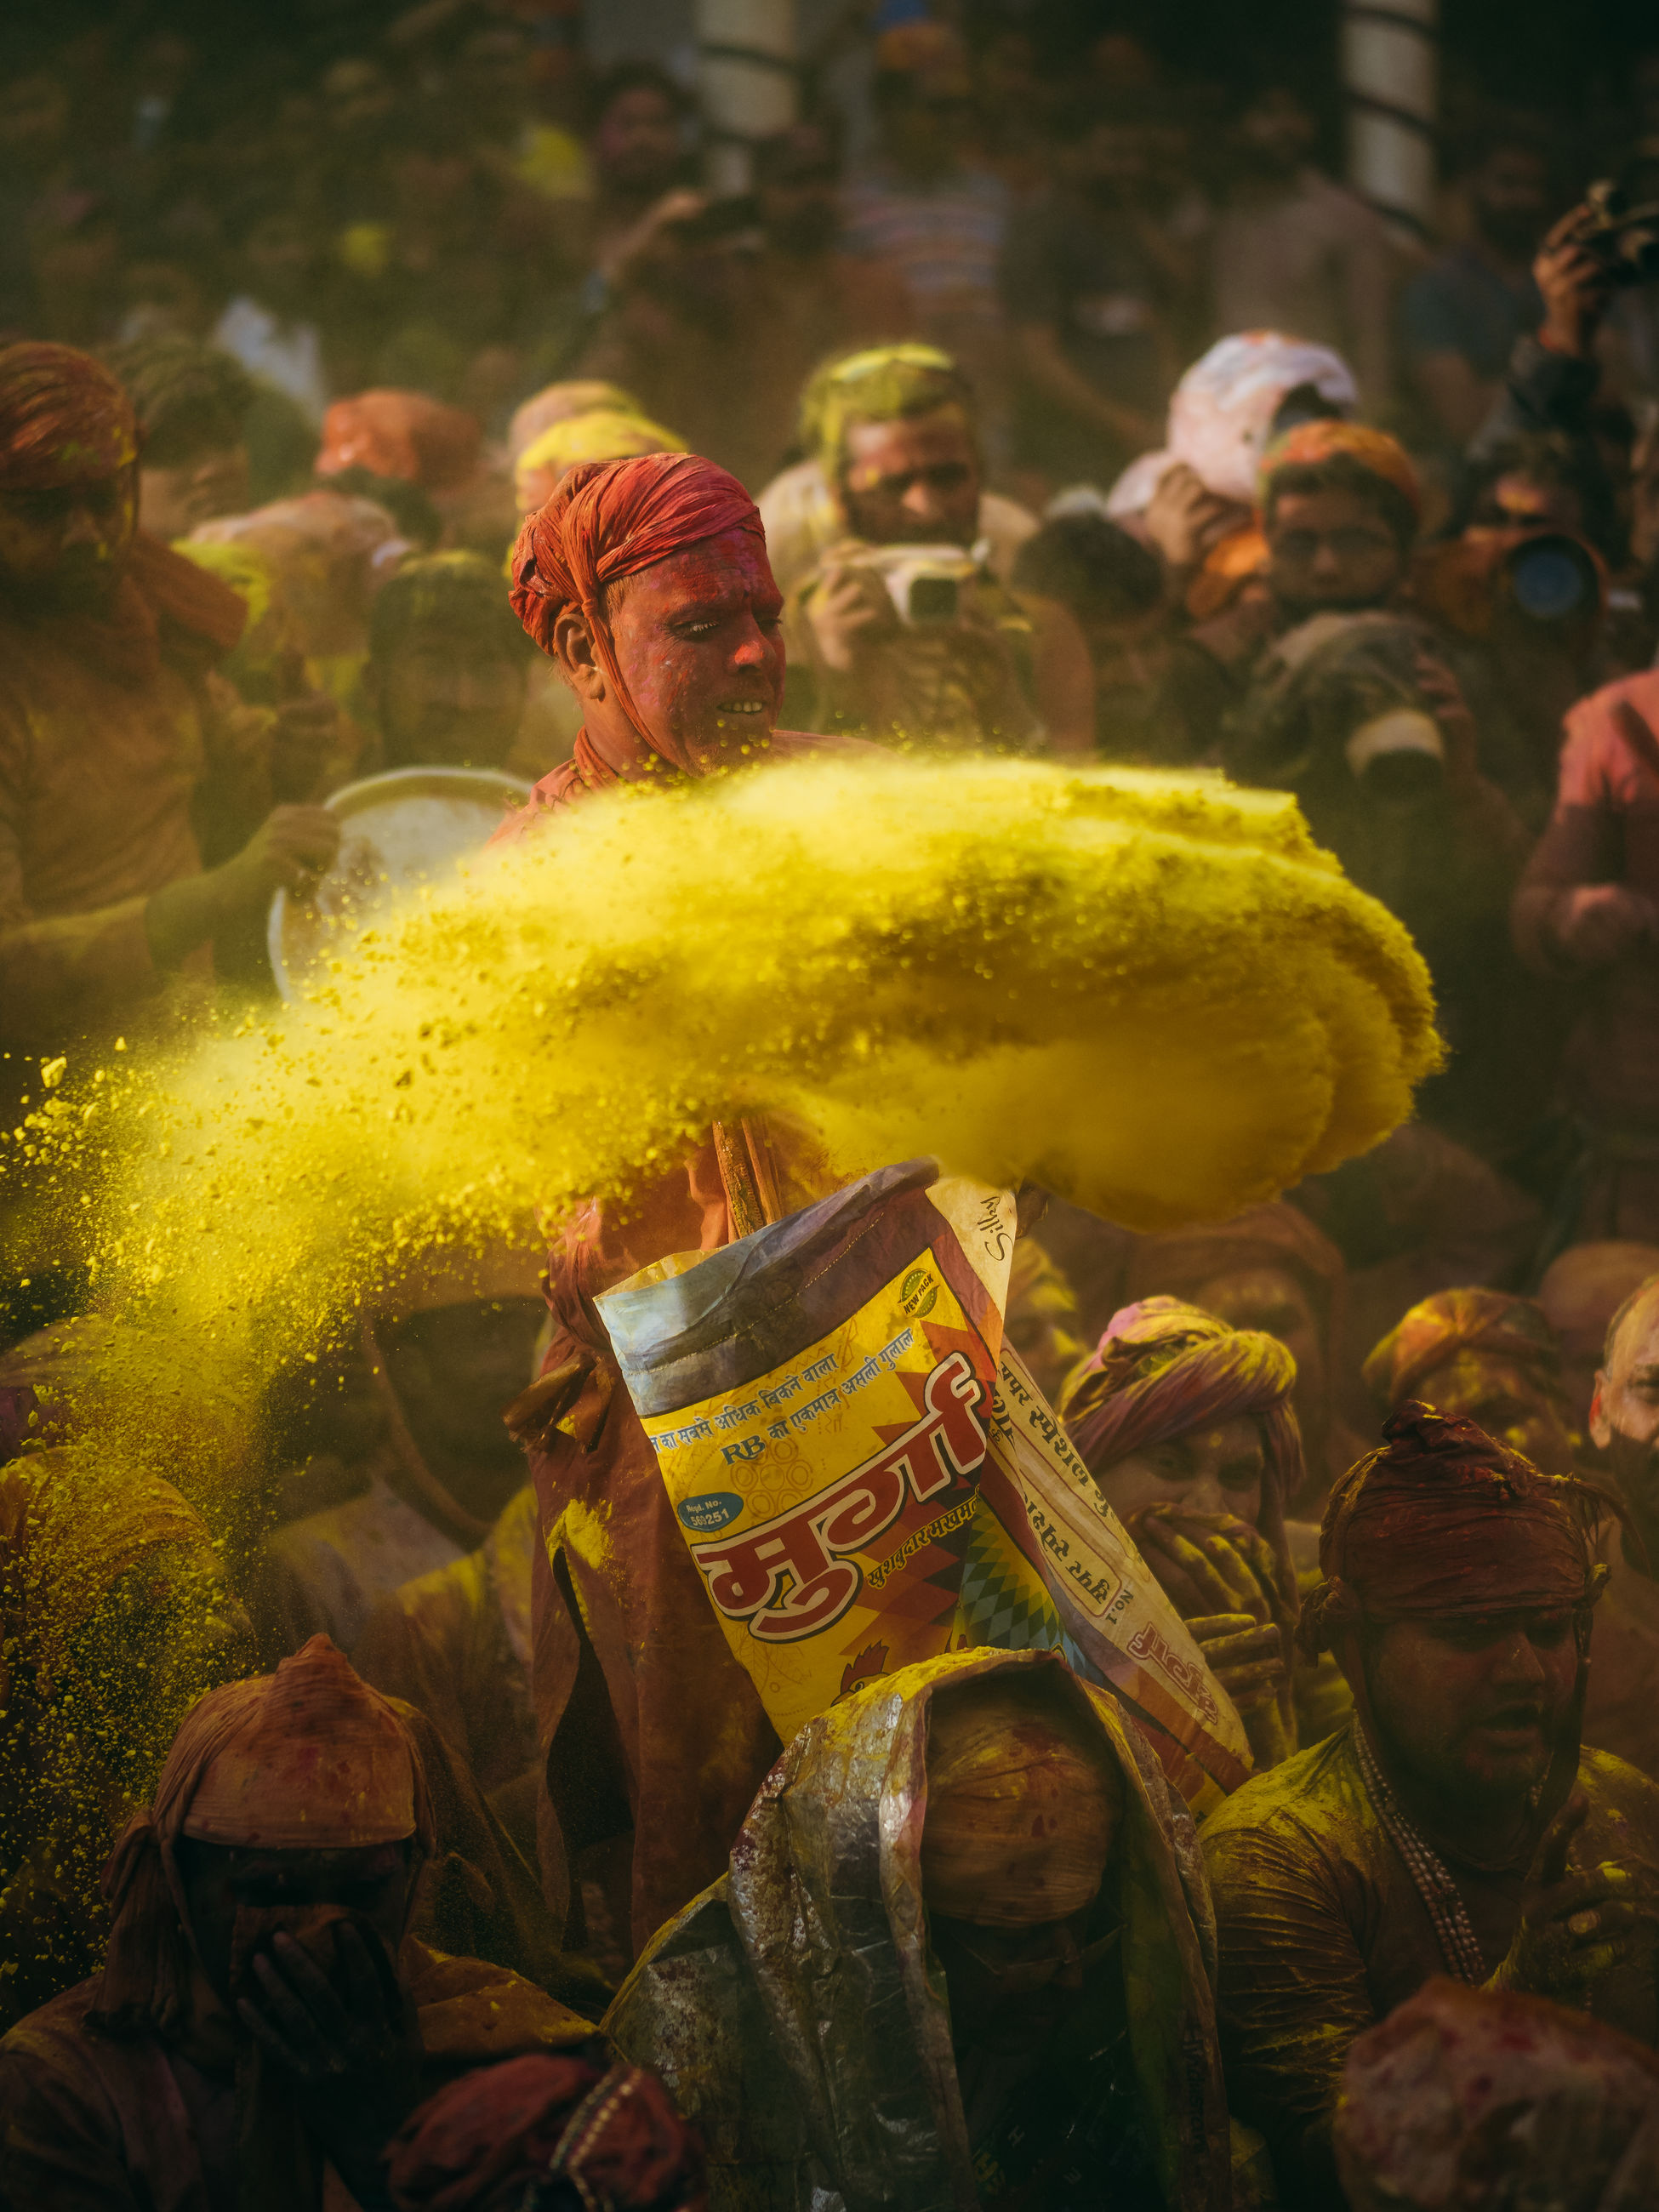 group of people, real people, celebration, men, people, traditional festival, holi, day, lifestyles, belief, group, event, adult, festival, religion, medium group of people, outdoors